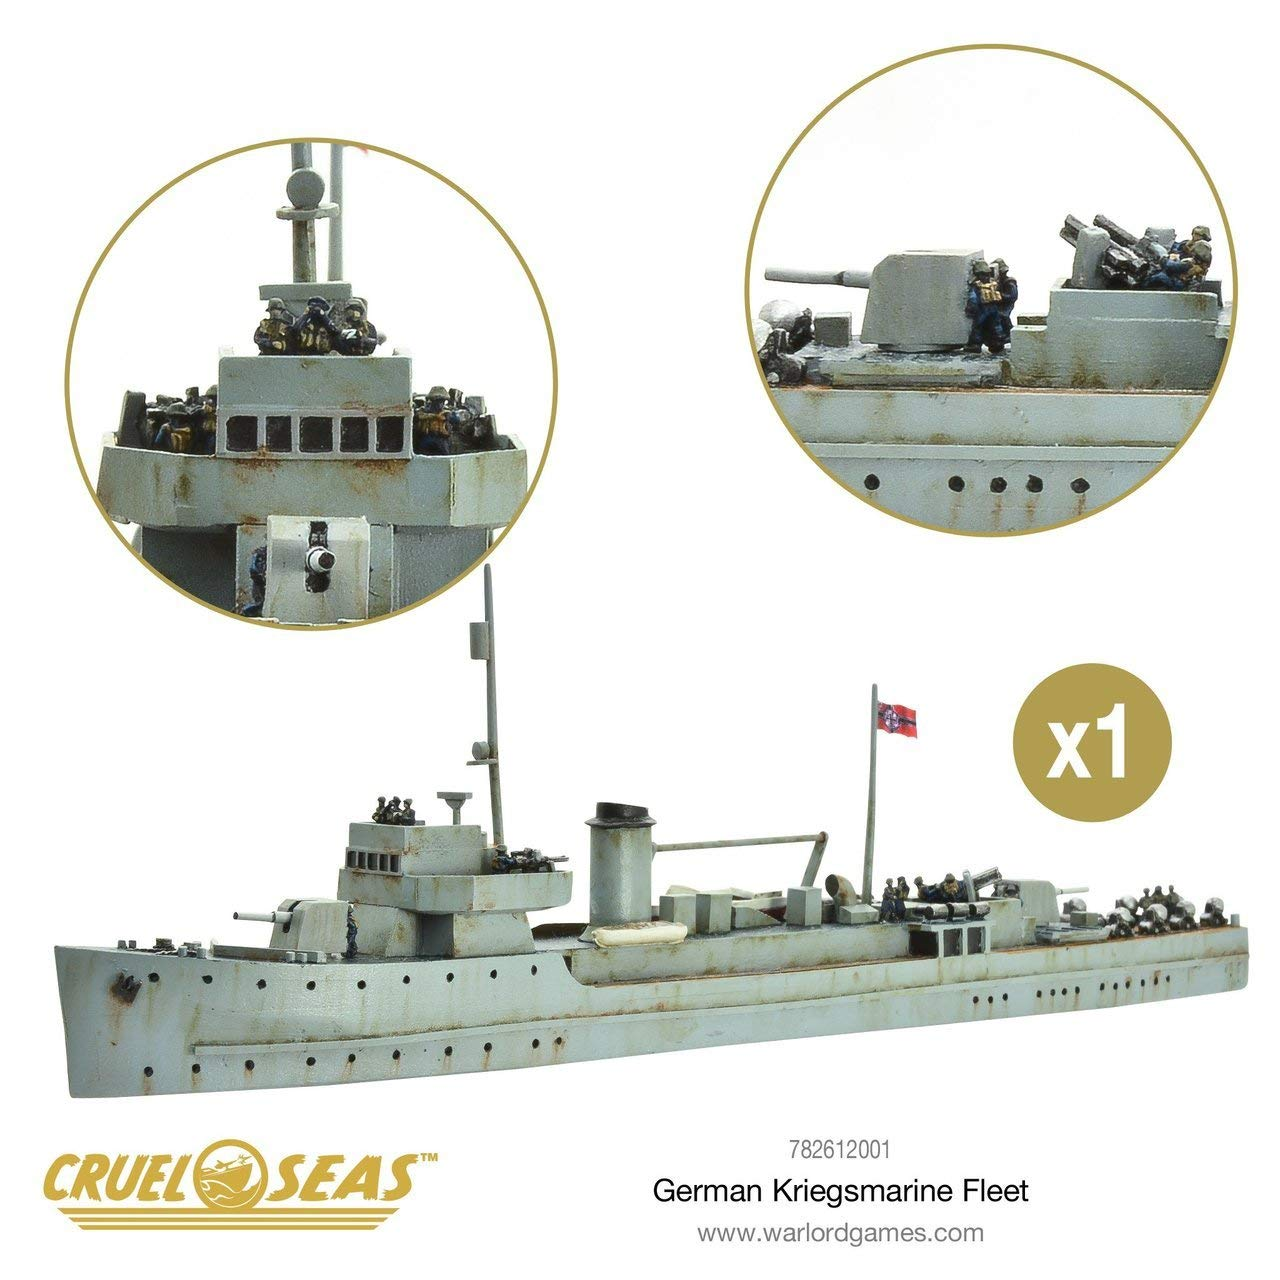 Cruel Seas German Kriegsmarine Fleet Starter Set, World War II Naval Battle Game ... by Cruel Seas (Image #6)